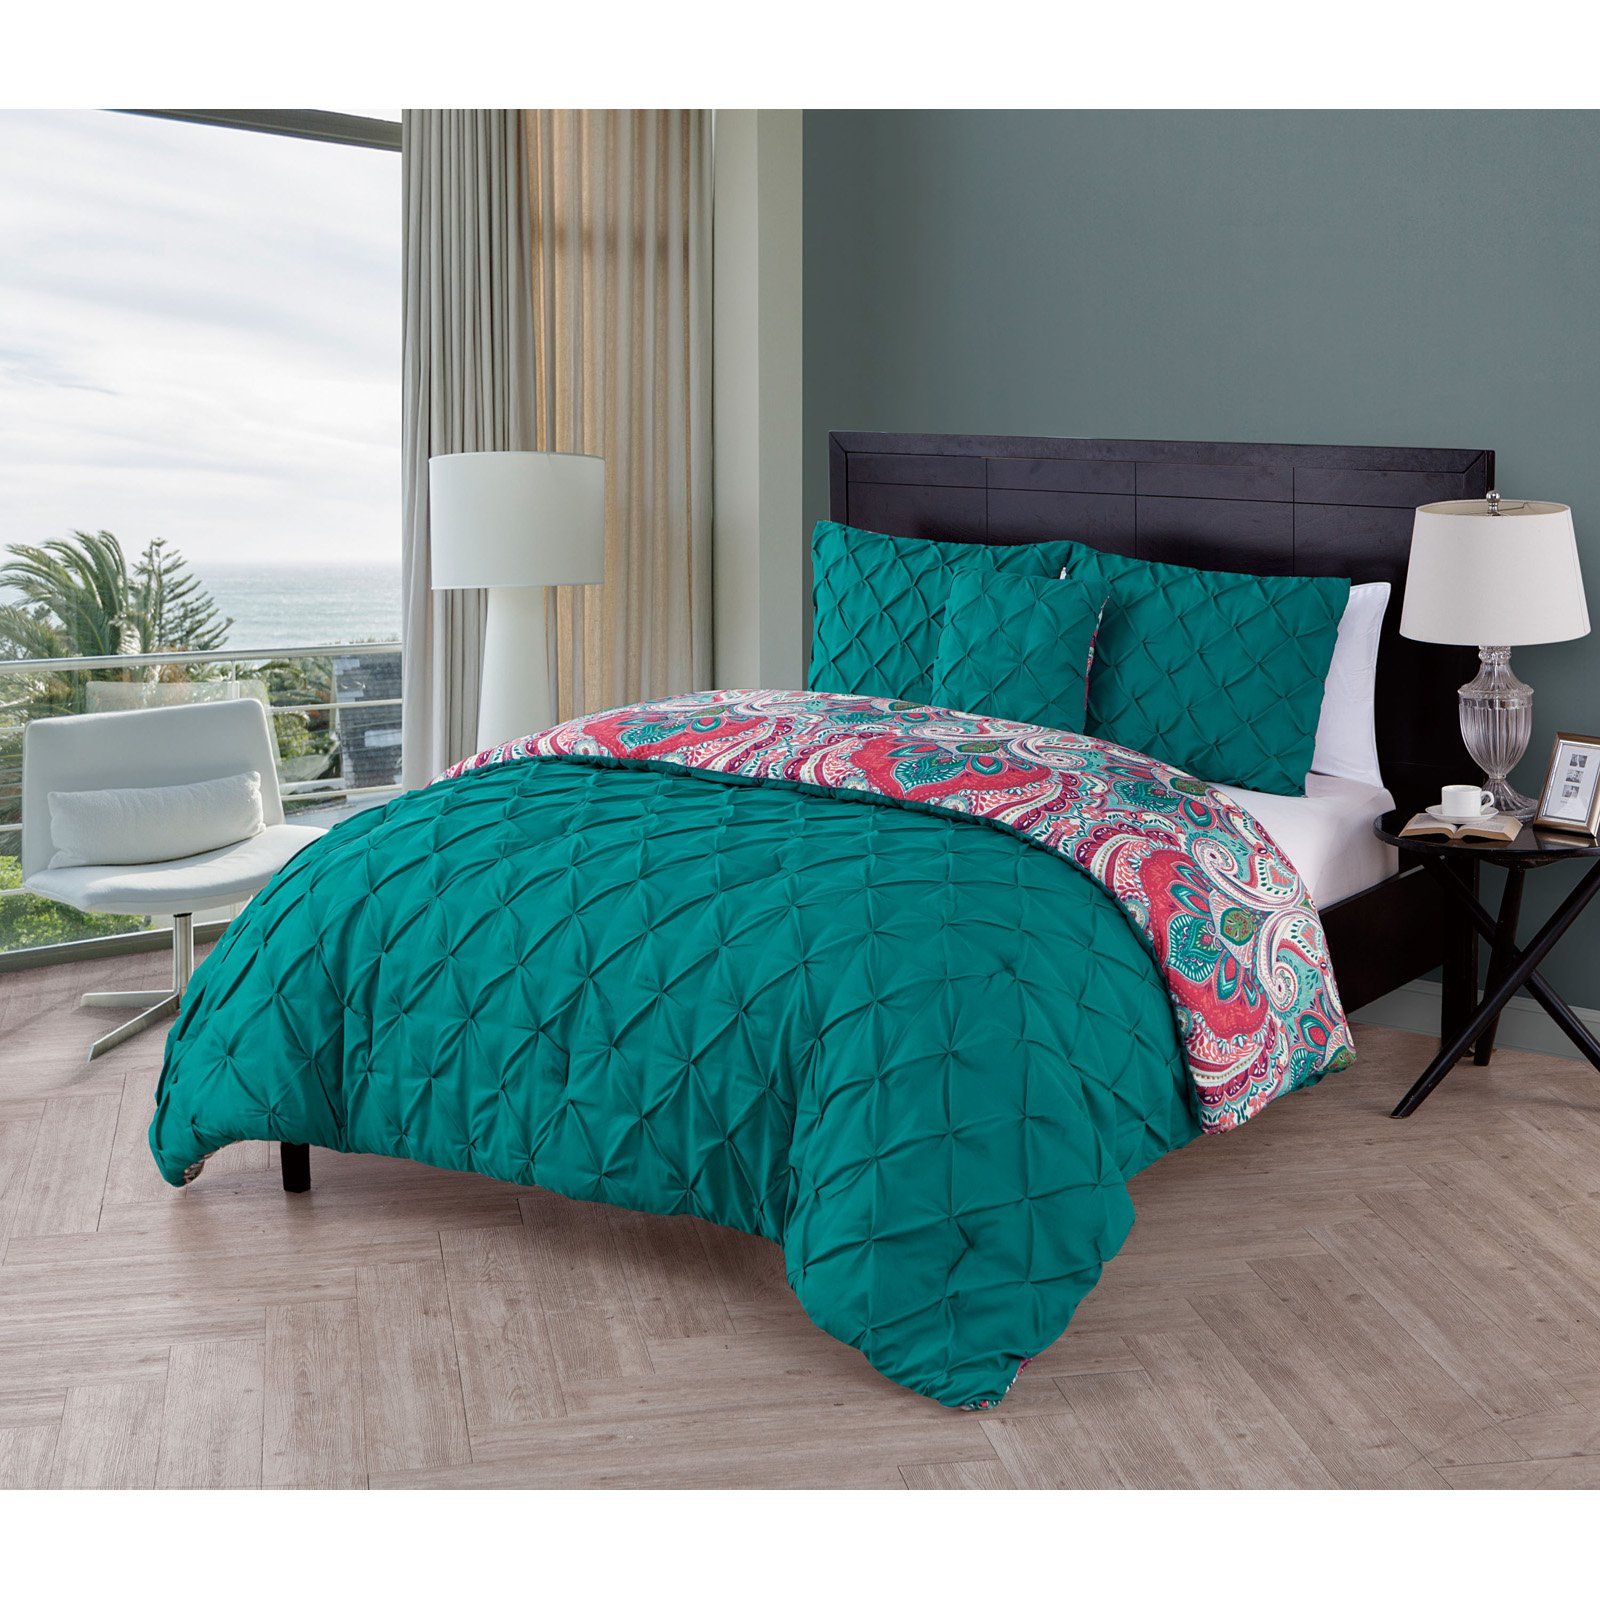 VCNY Home Maison Solid Pintuck Technique Reversible Paisley Damask Printed 4 Piece Bedding Comforter Set, Shams Included